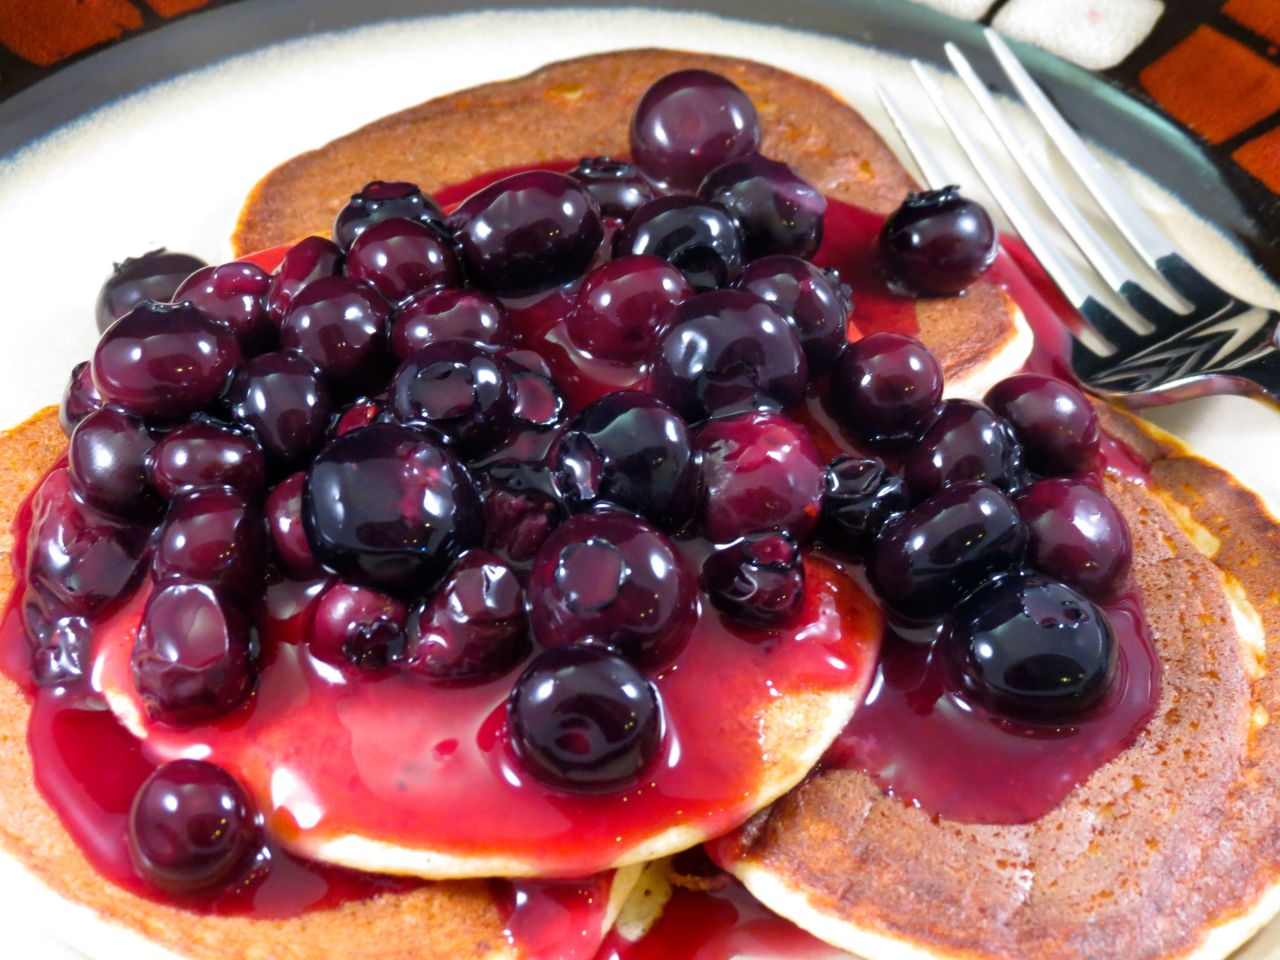 ... Pancakes with Homemade Blueberry Sauce | Realistic Cooking Ideas